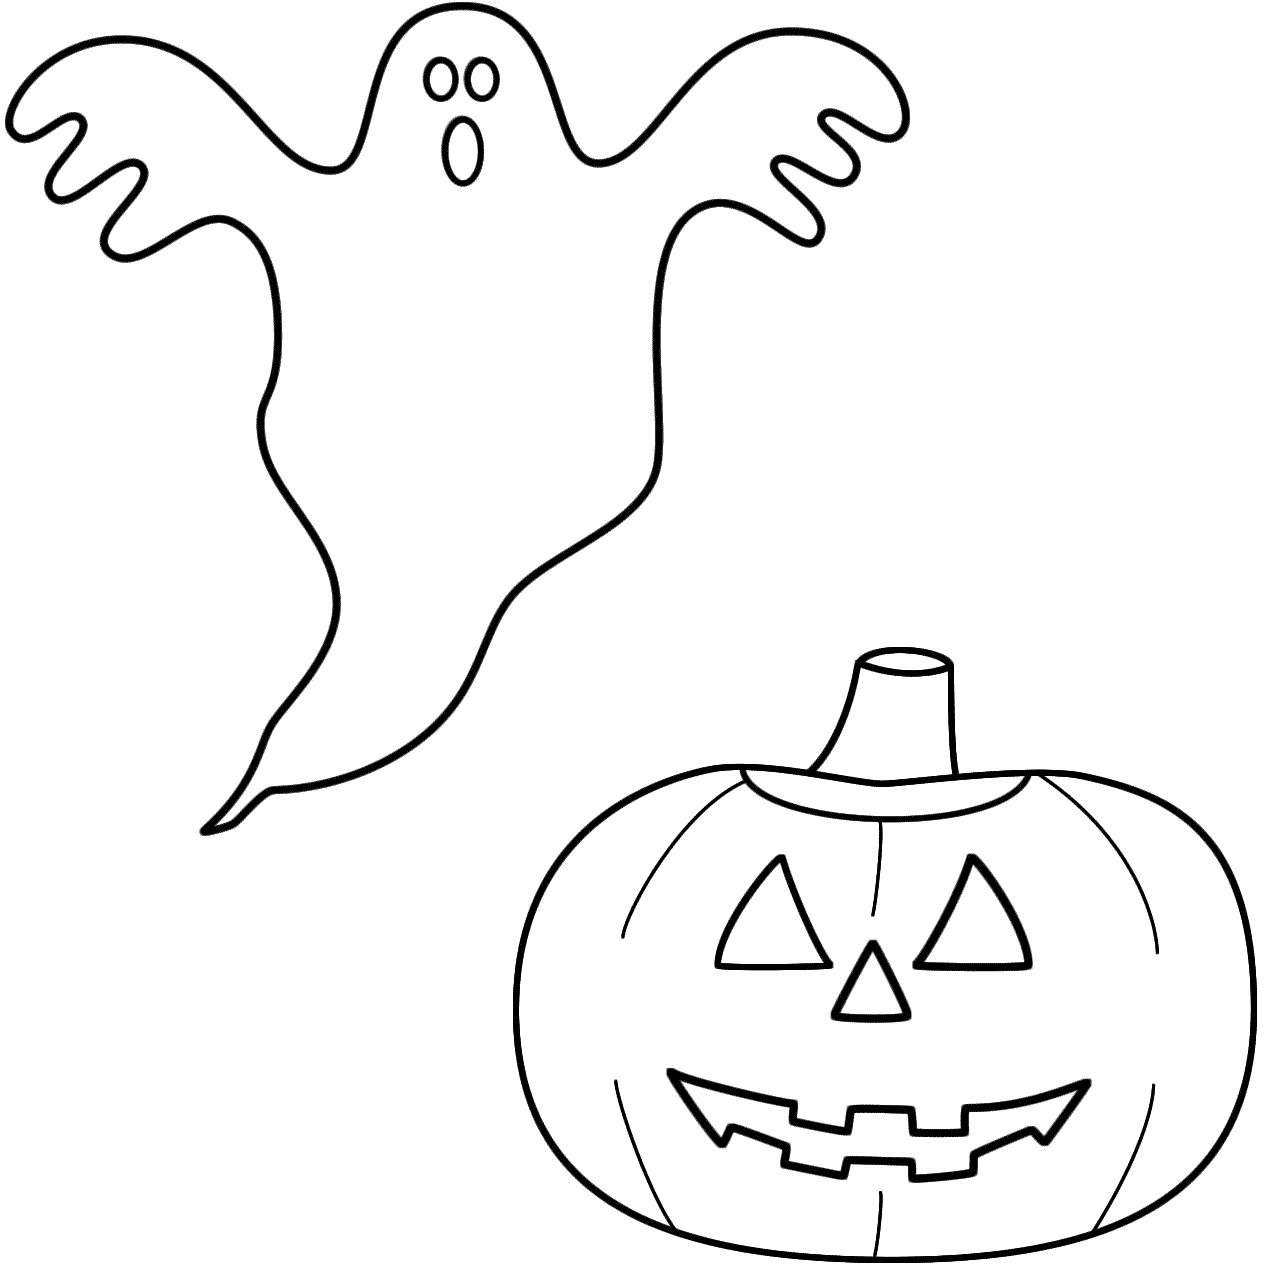 Drawn ghostly halloween coloring Lantern o pumpkin/jack coloring page